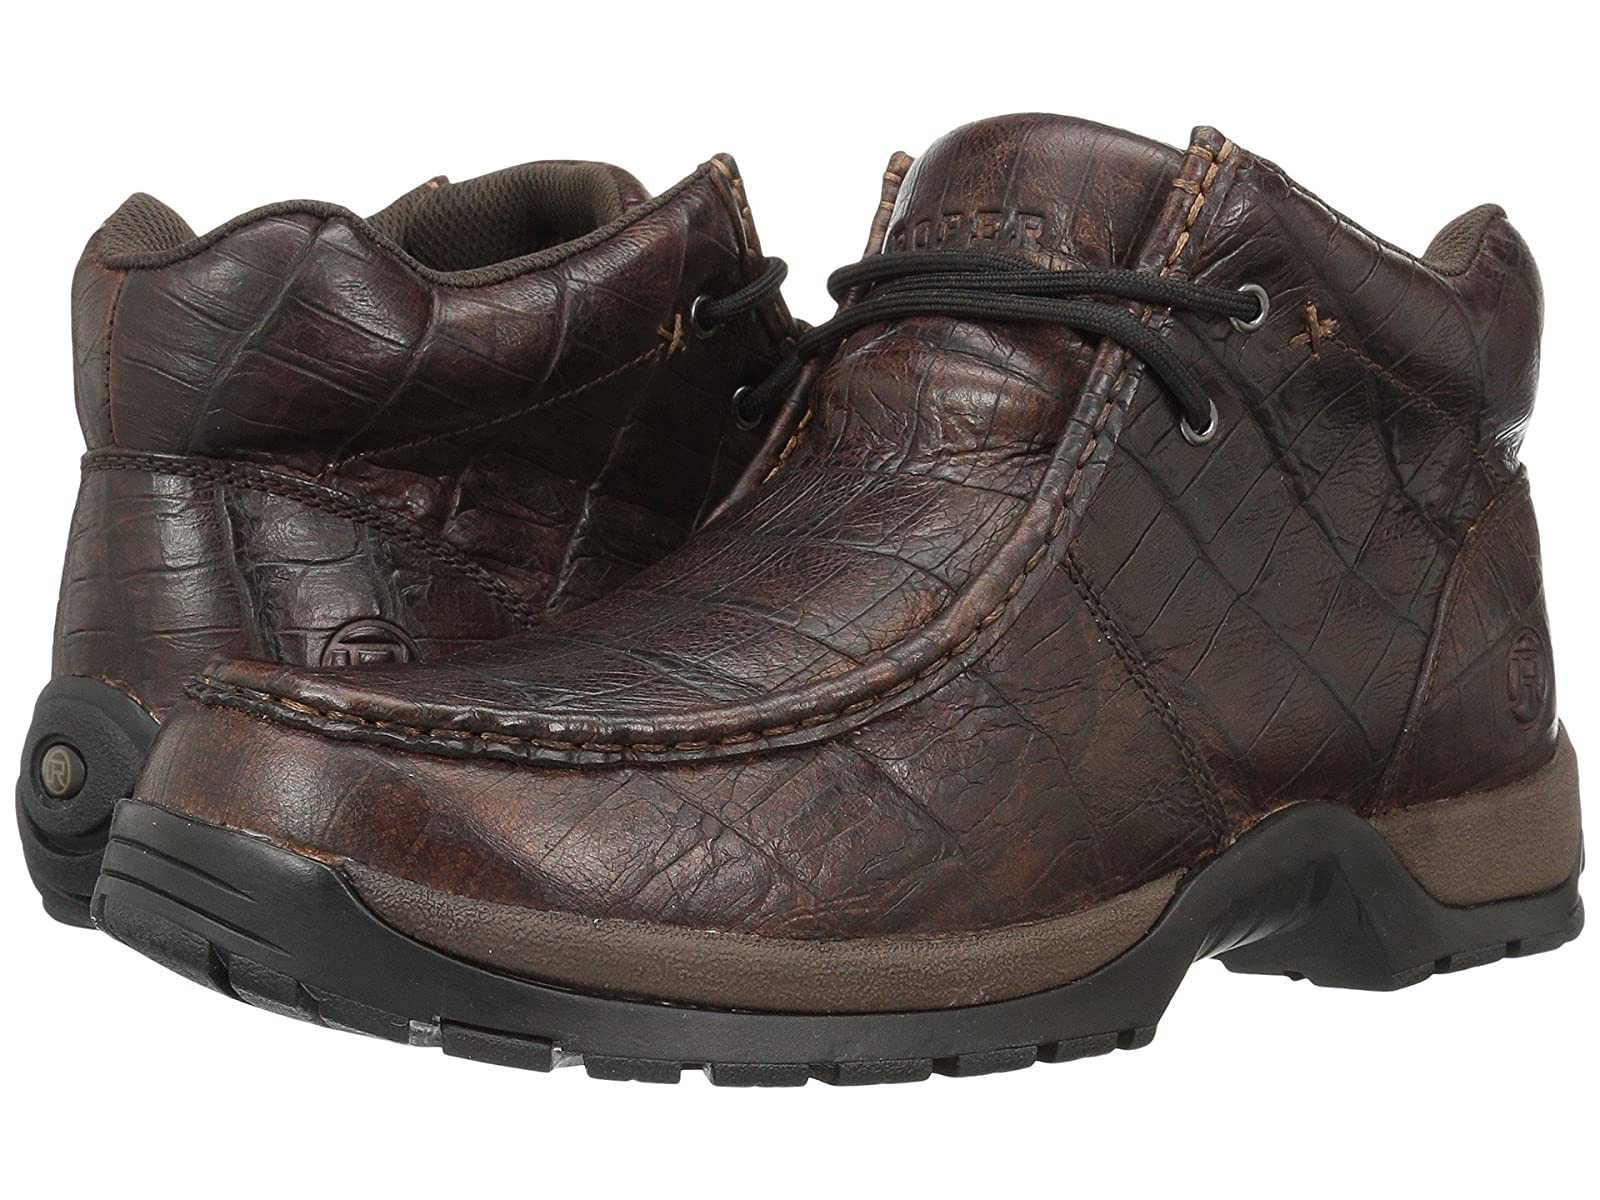 Roper American GatorEconomical and quality shoes